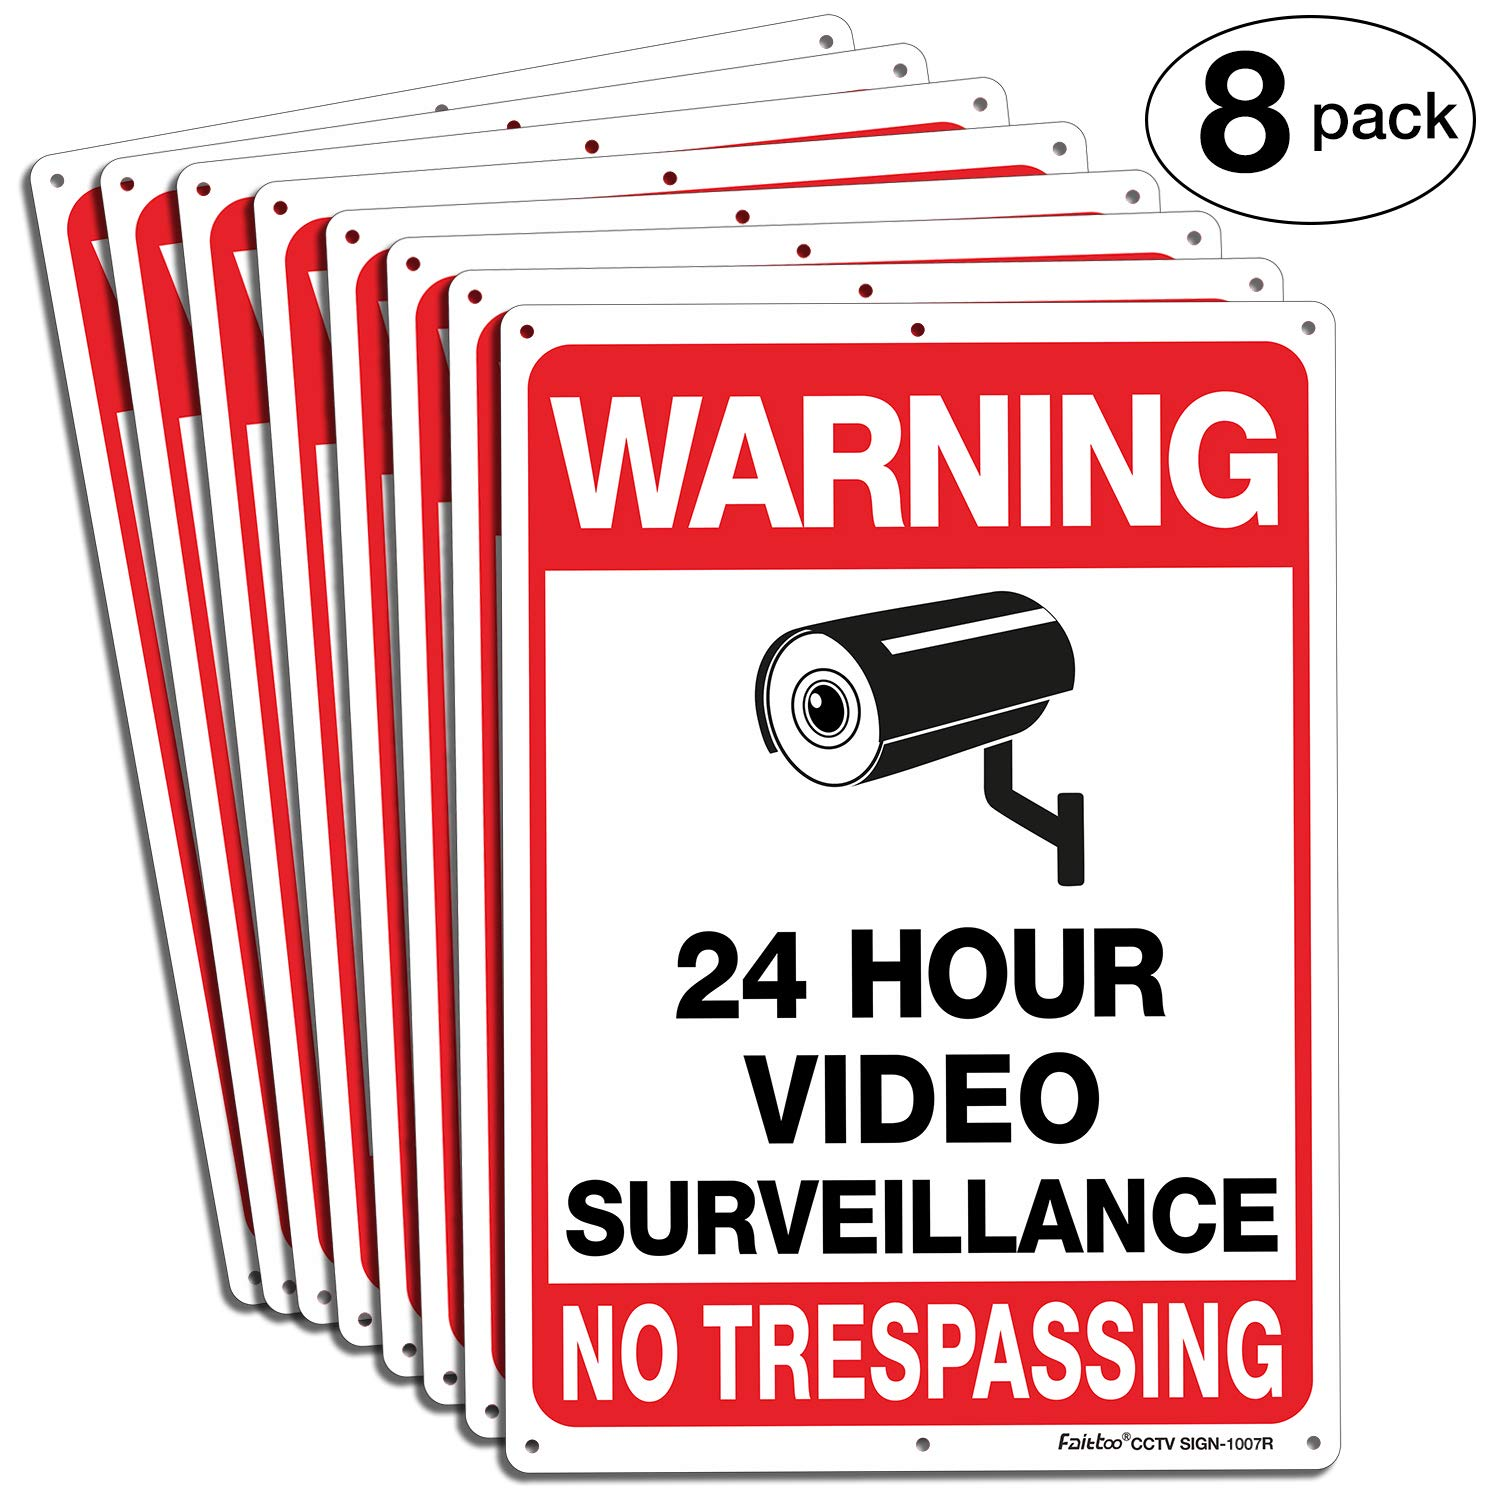 Faittoo 8-Pack Video Surveillance Sign, No Trespassing Metal Reflective Warning Sign, 10x7 Inches 0.40 Aluminum Indoor Or Outdoor Use for Home Business CCTV Security Camera,UV Protected & Waterproof by Faittoo